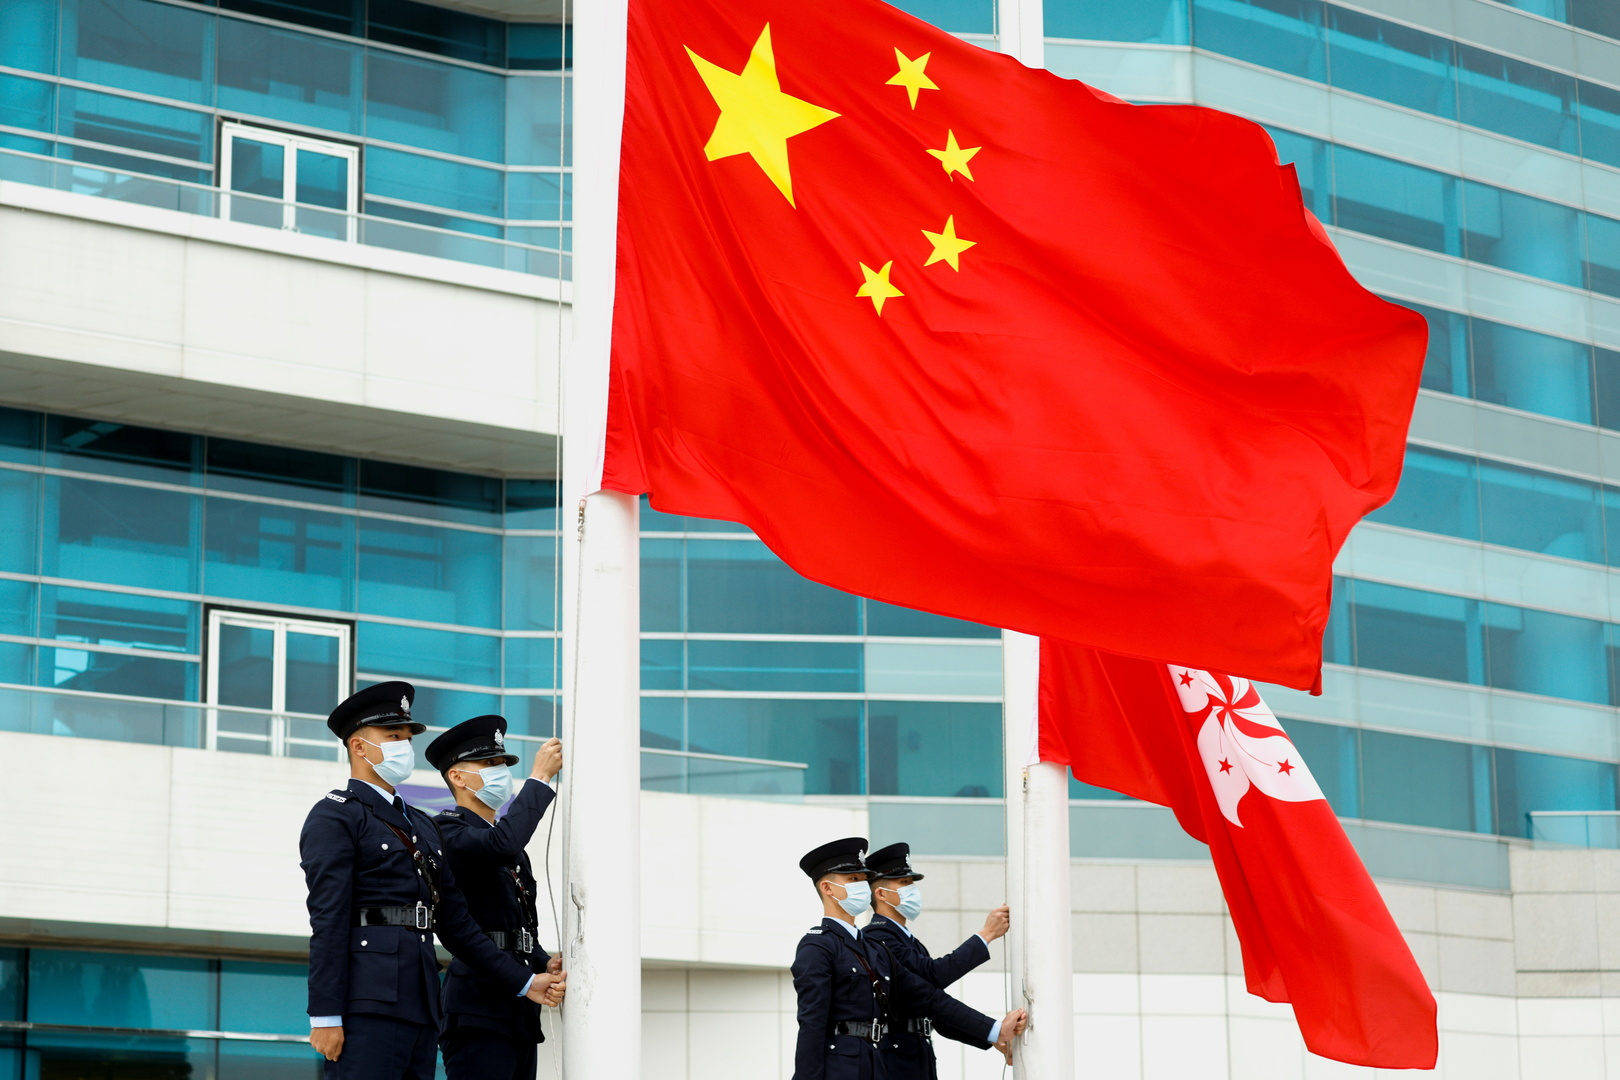 China decides to amend the electoral system in Hong Kong